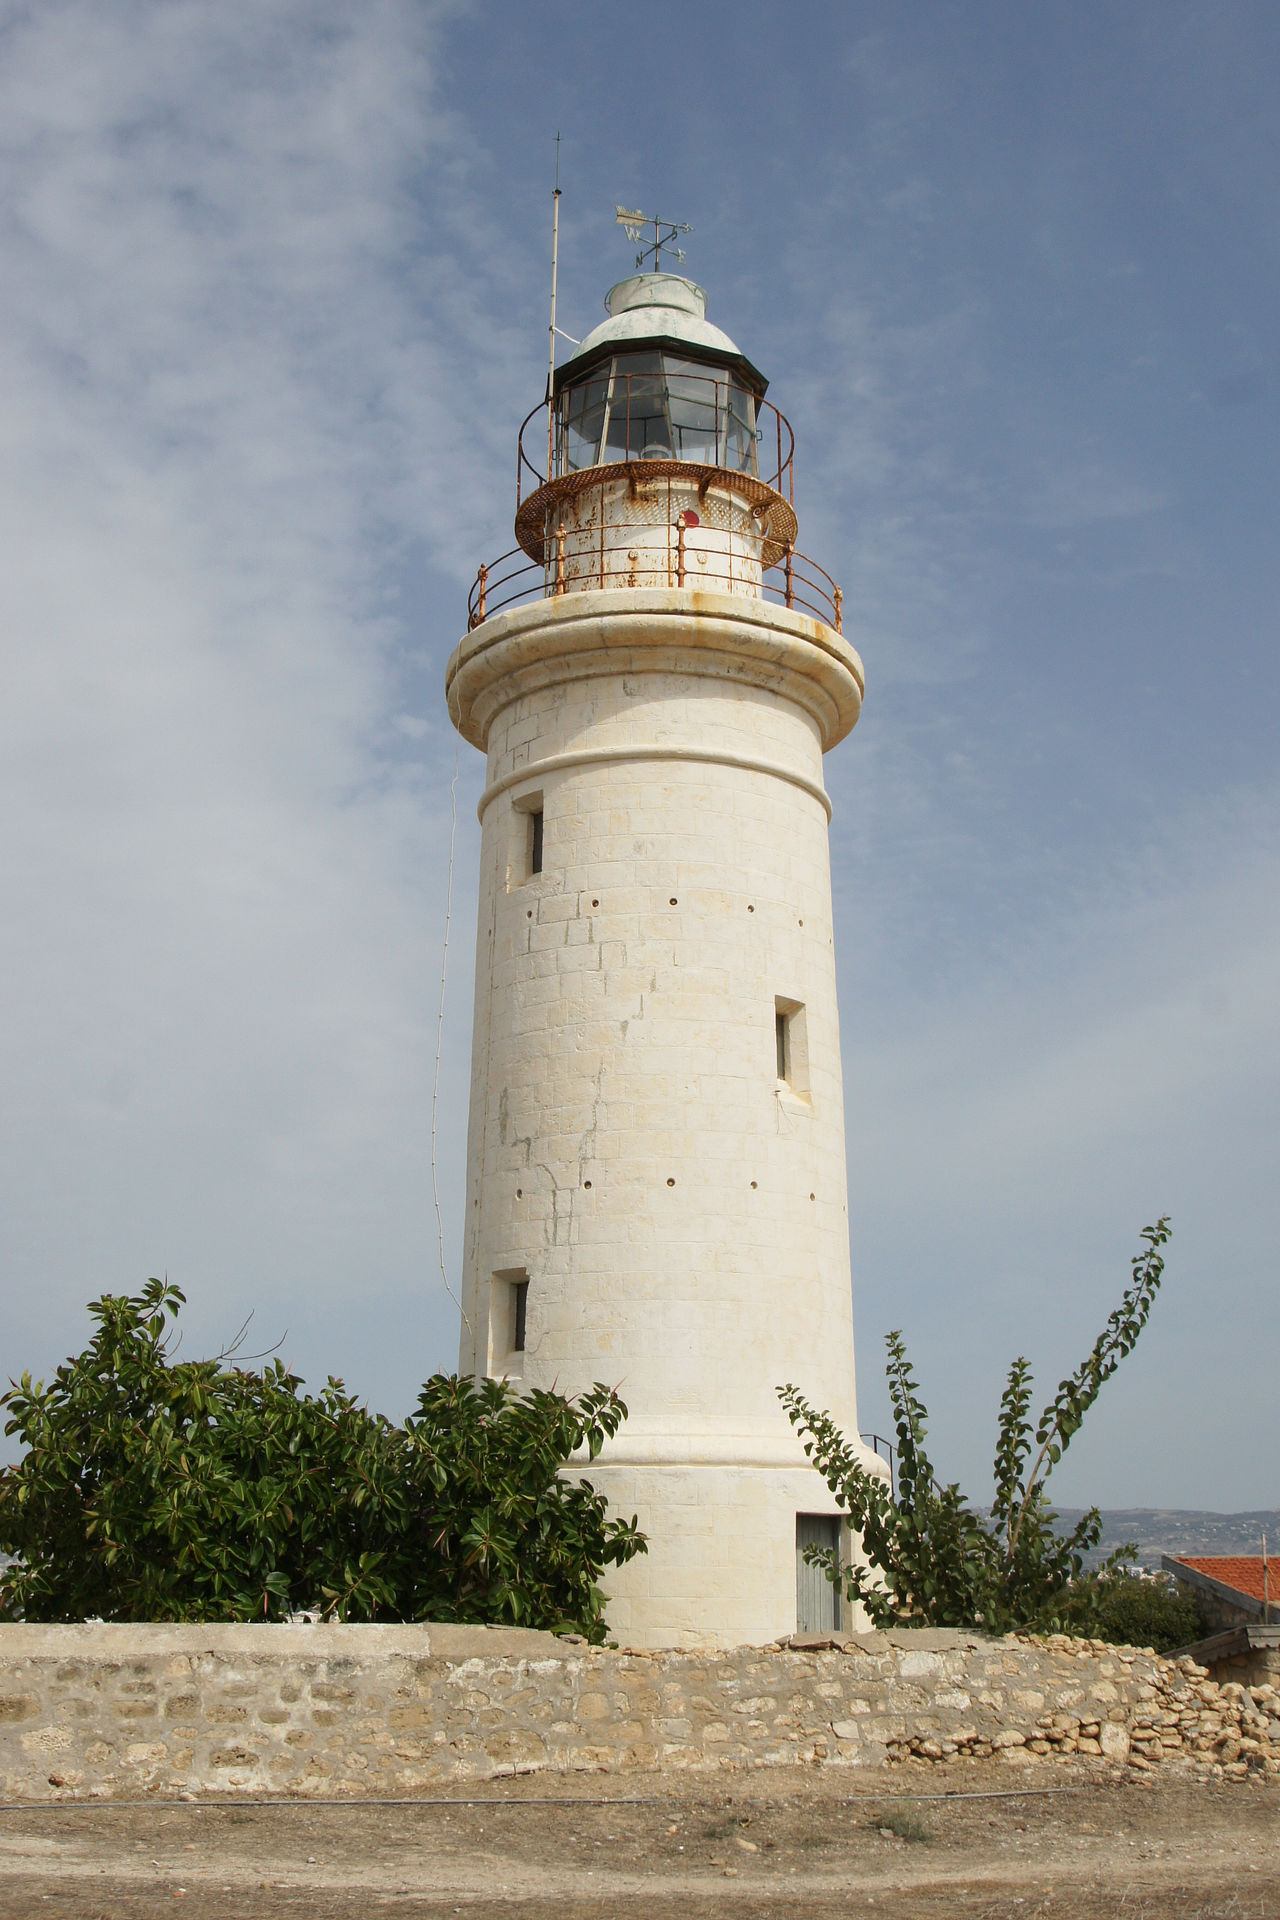 Lighthouse of Paphos, Cyprus Architecture Building Exterior Built Structure Coast Coastline Cyprus Day Direction Europe Guidance Lighthouse Mediterranean  No People Outdoors Paphos Sightseeing Solitude Tourism Tourist Attraction  Tower Travel Travel Destinations White